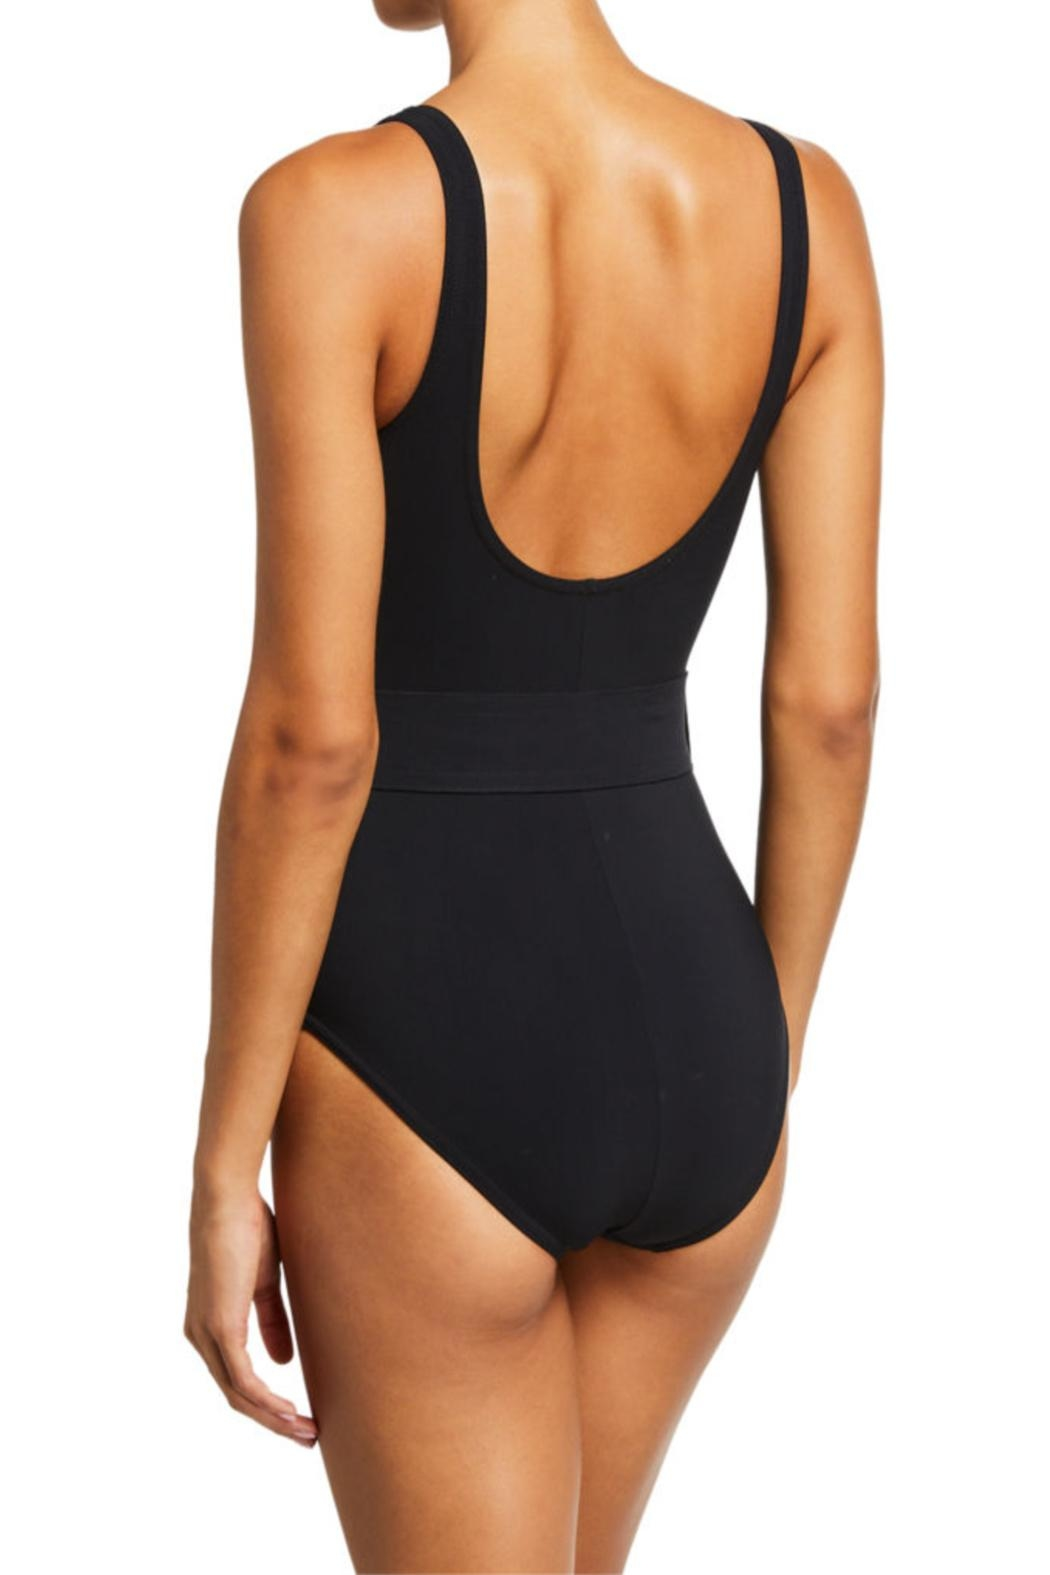 Karla Colletto Angelina Belted One-Piece - Front Full Image